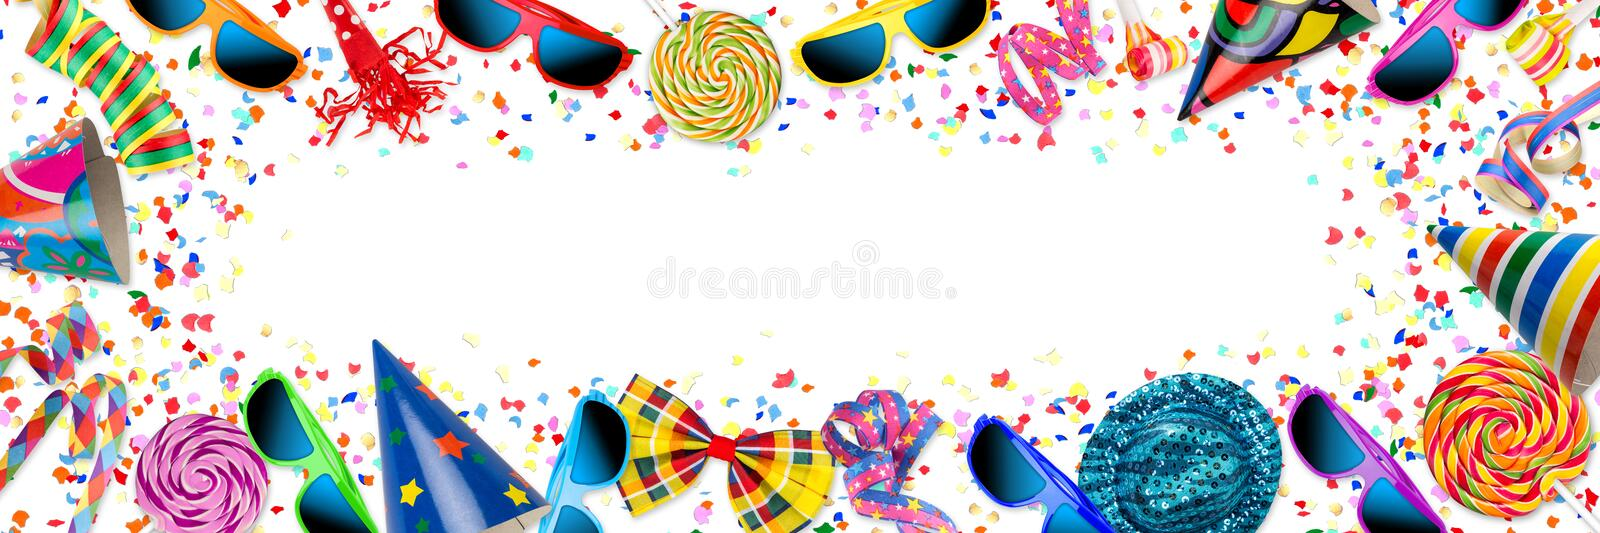 colorful wide panorama party carnival birthday celebration background royalty free illustration